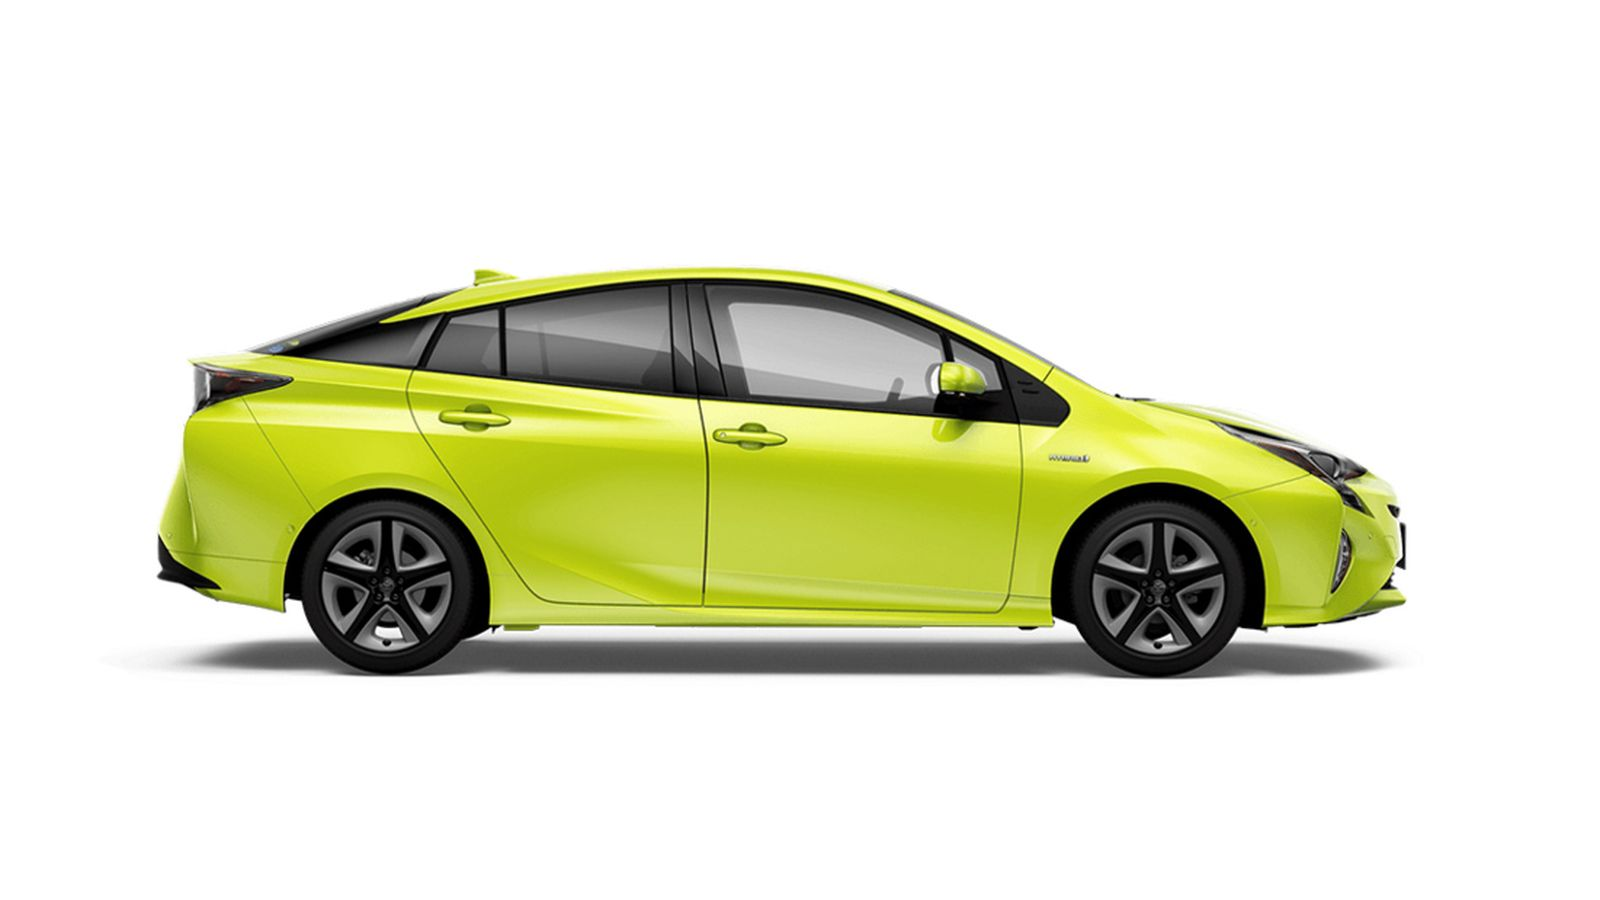 Toyota Prius Lime Green Paint